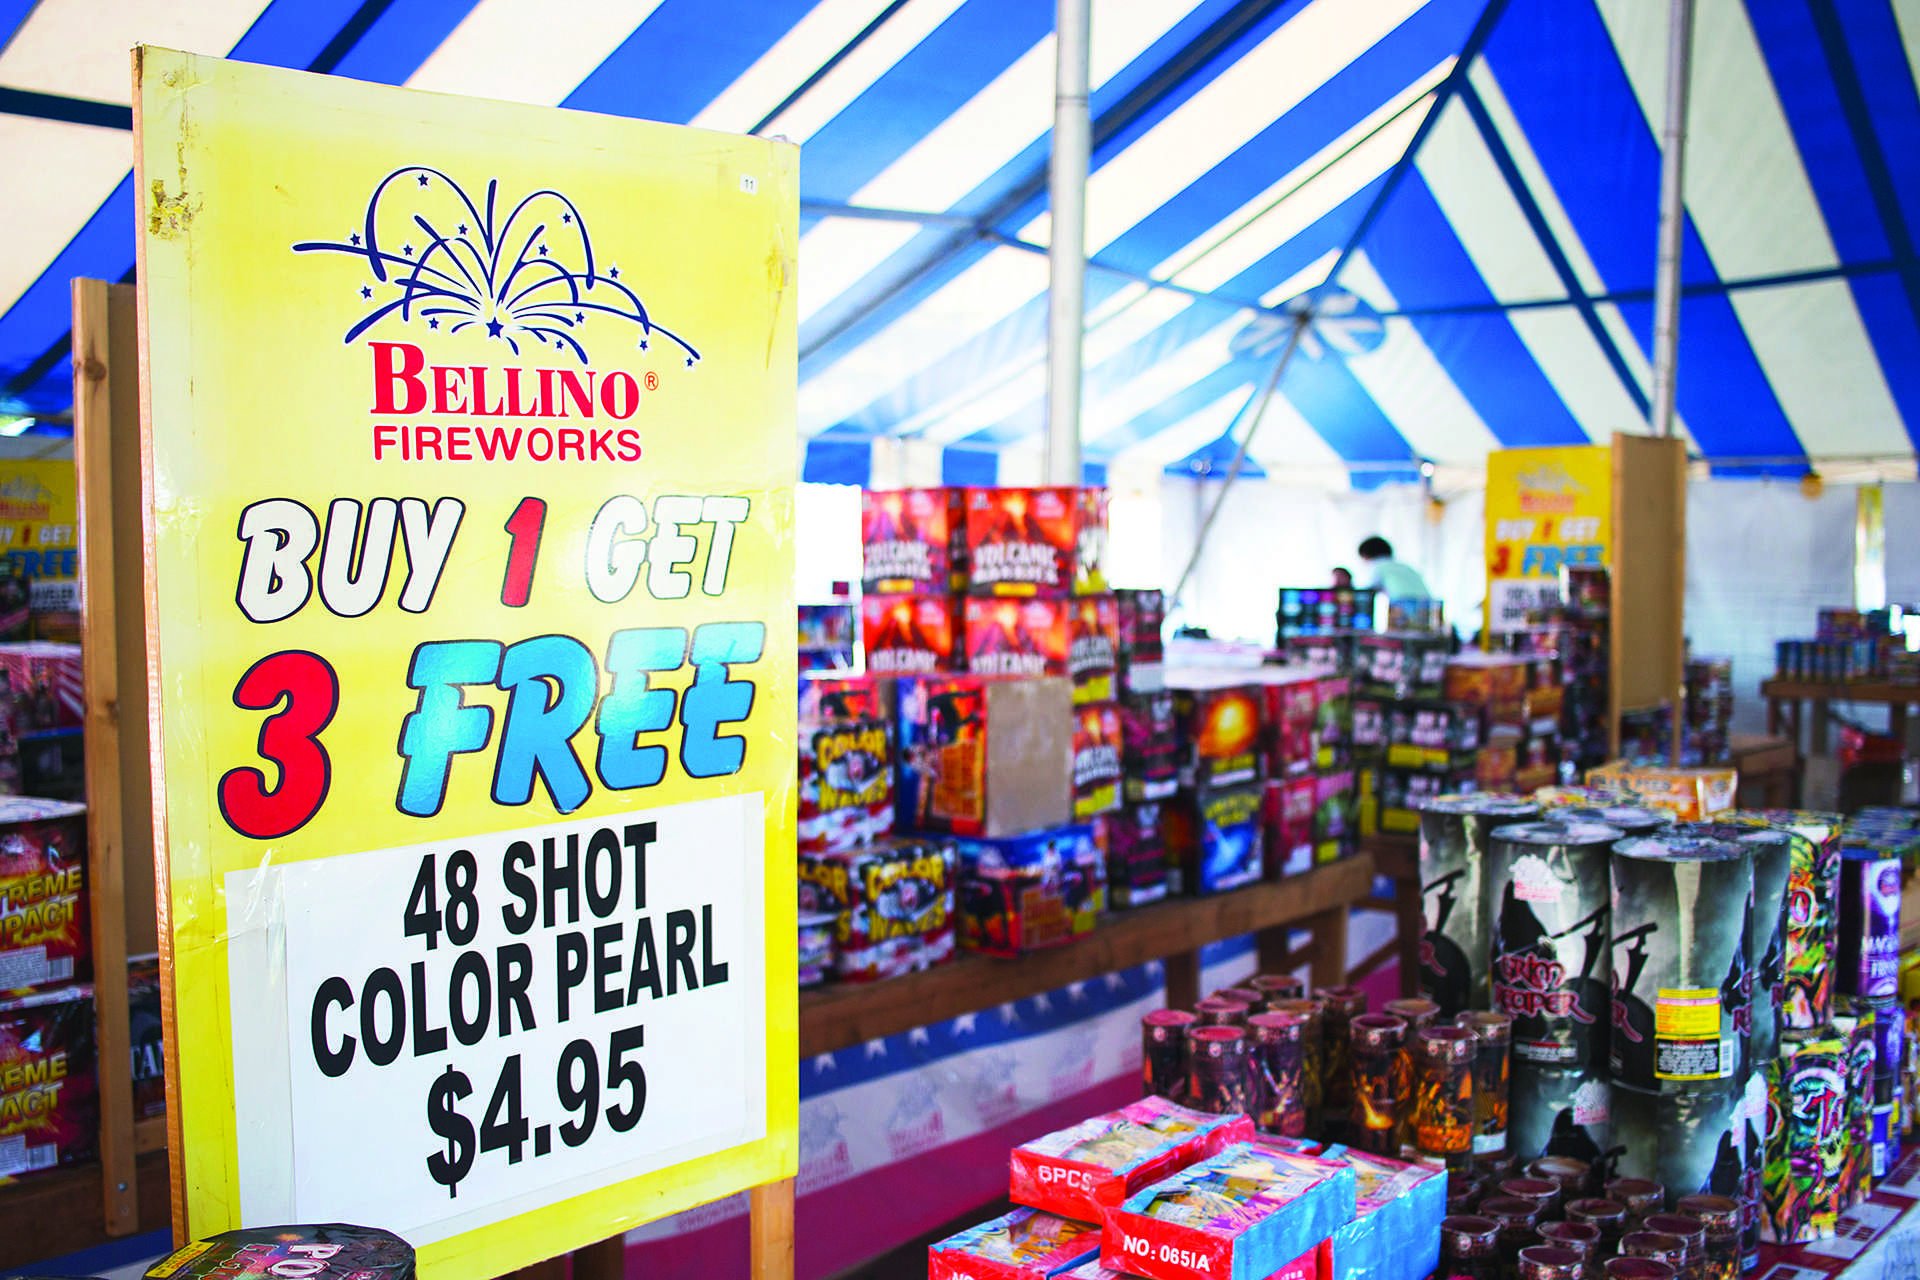 Fireworks are seen inside a Bellino Fireworks tent in the parking lot of the 1st Avenue Hy-Vee in Iowa City on Tuesday, June 27, 2017. State law says consumer fireworks may be sold and used in permitted areas and many be purchased by customers 18 or older. Iowa City Code says fireworks many not be used in city limits with an exception for novelty fireworks, such as sparklers and snakes. (Joseph Cress/The Daily Iowan)